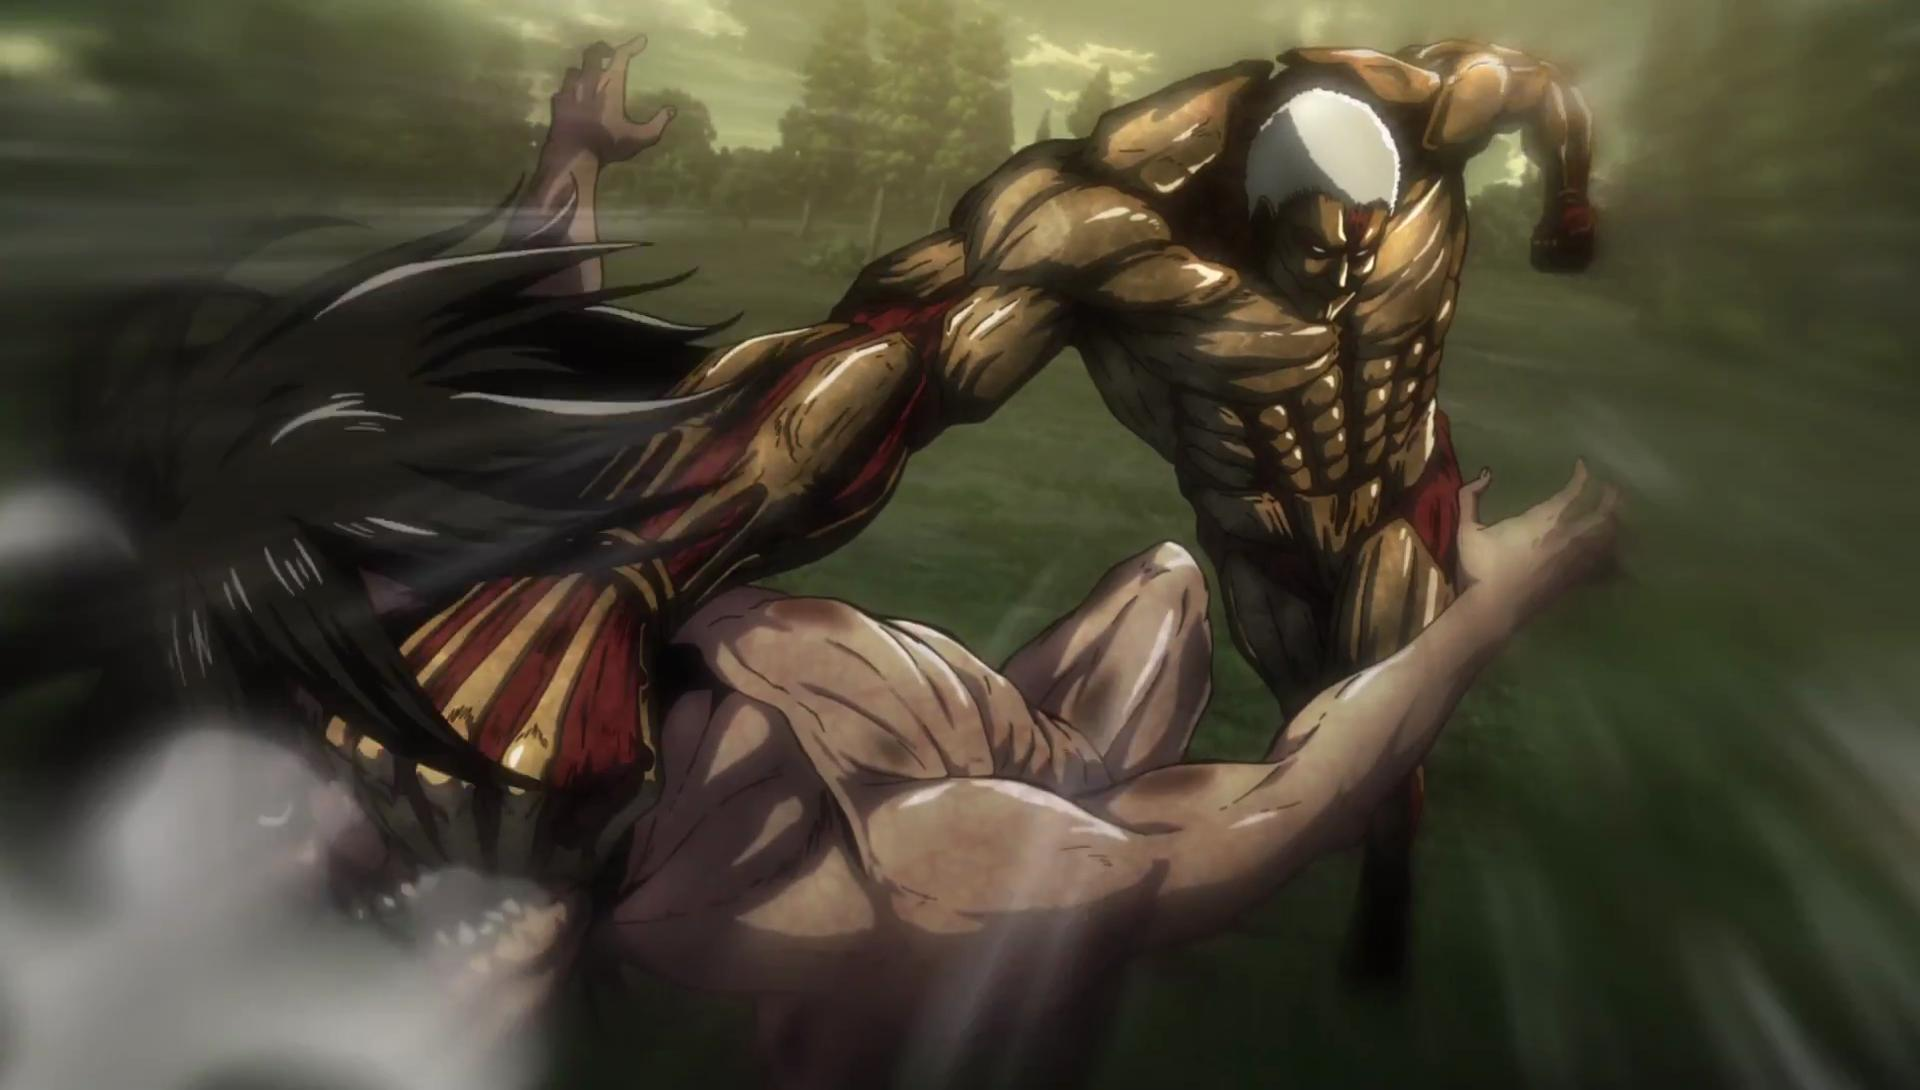 Attack on Titan' Season 3 Release Date: When and How US Viewers Can